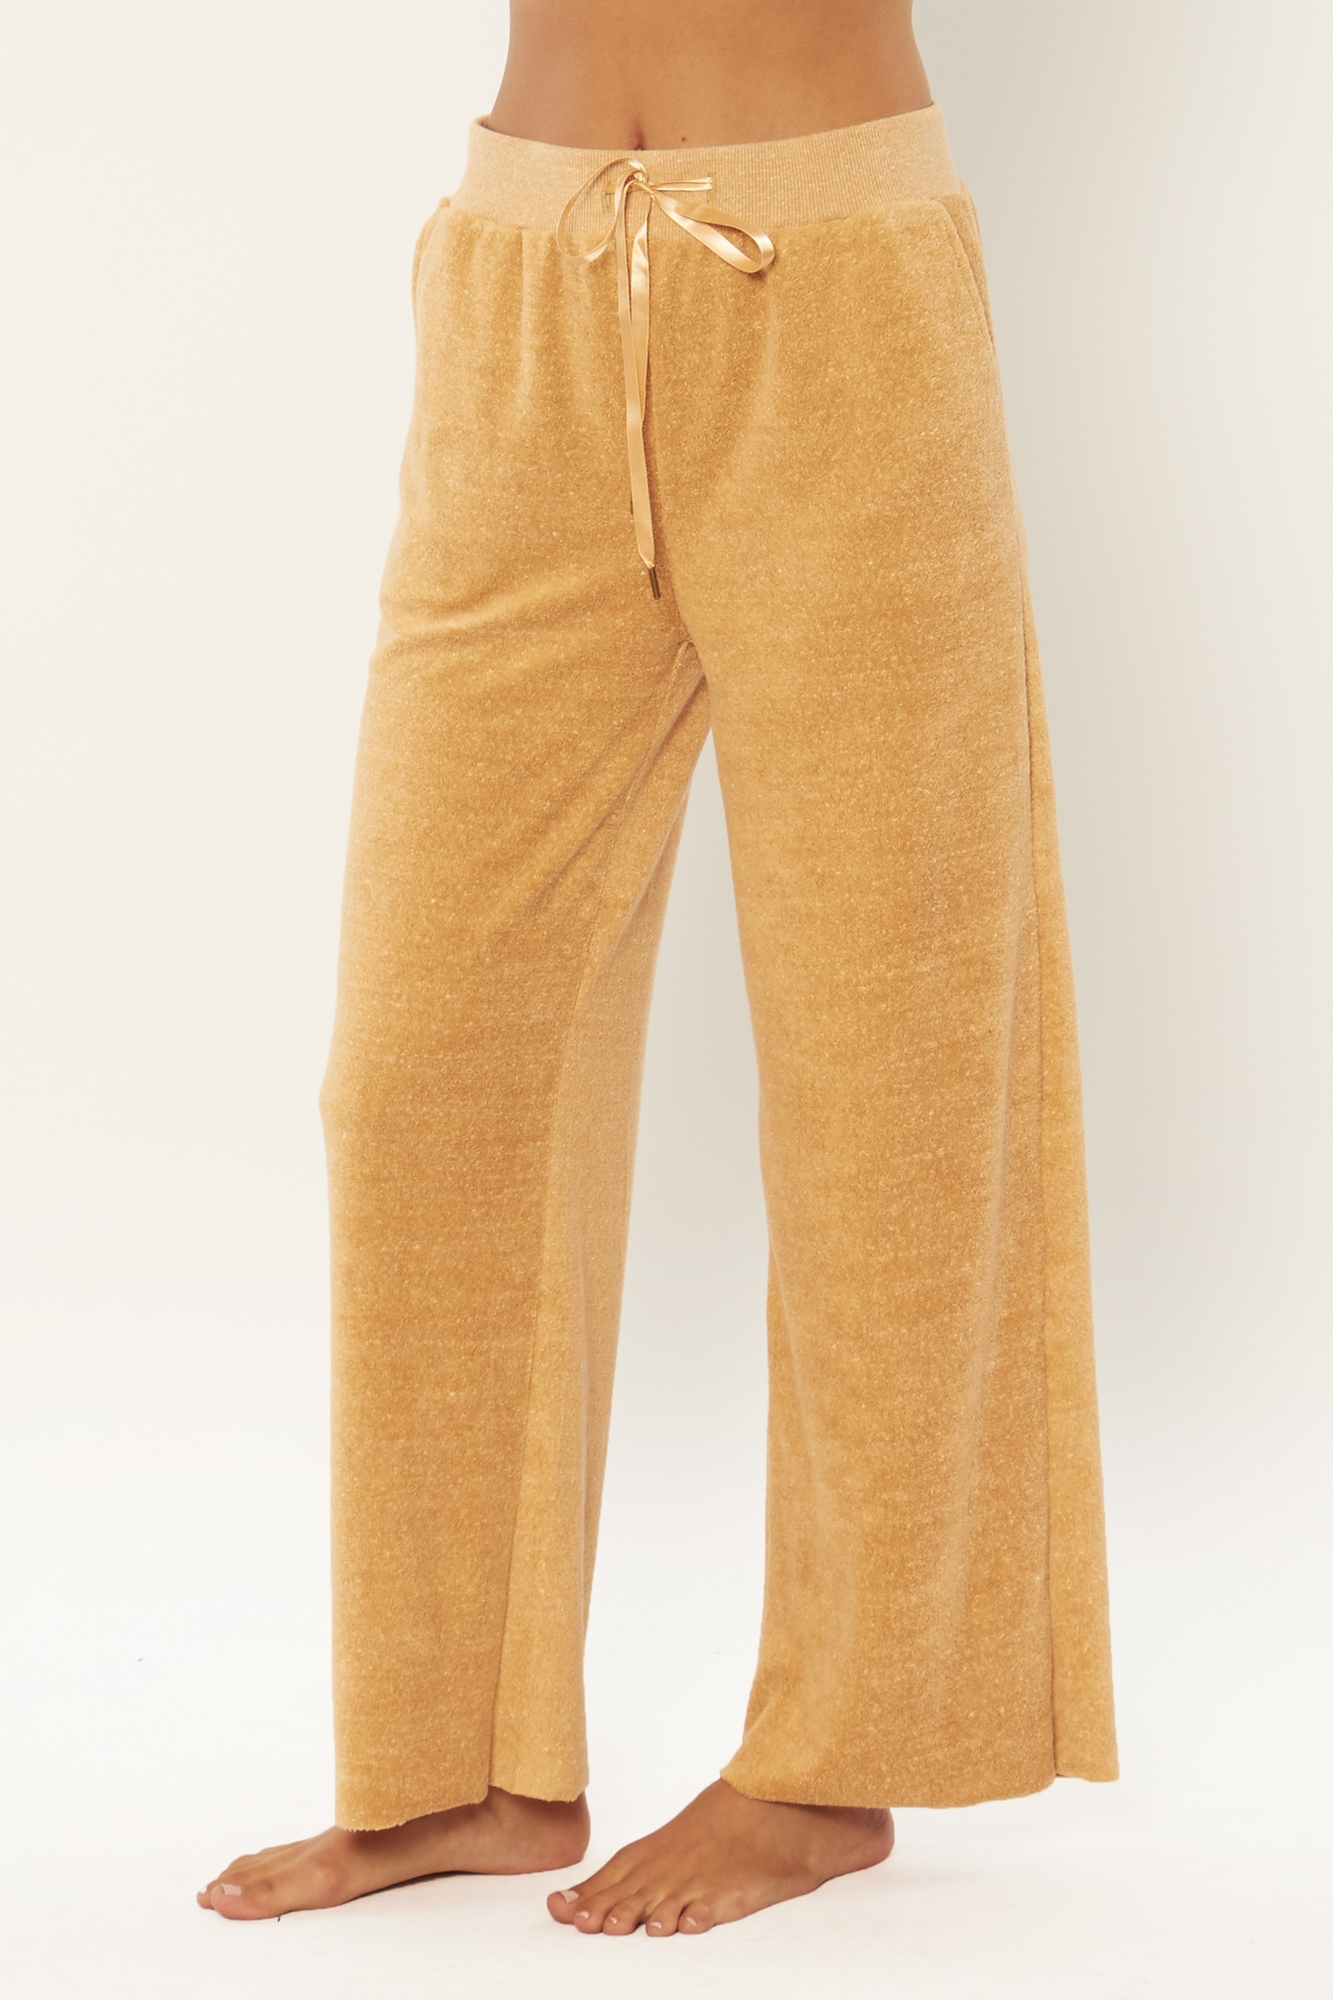 Kick Slicker Terry Pant